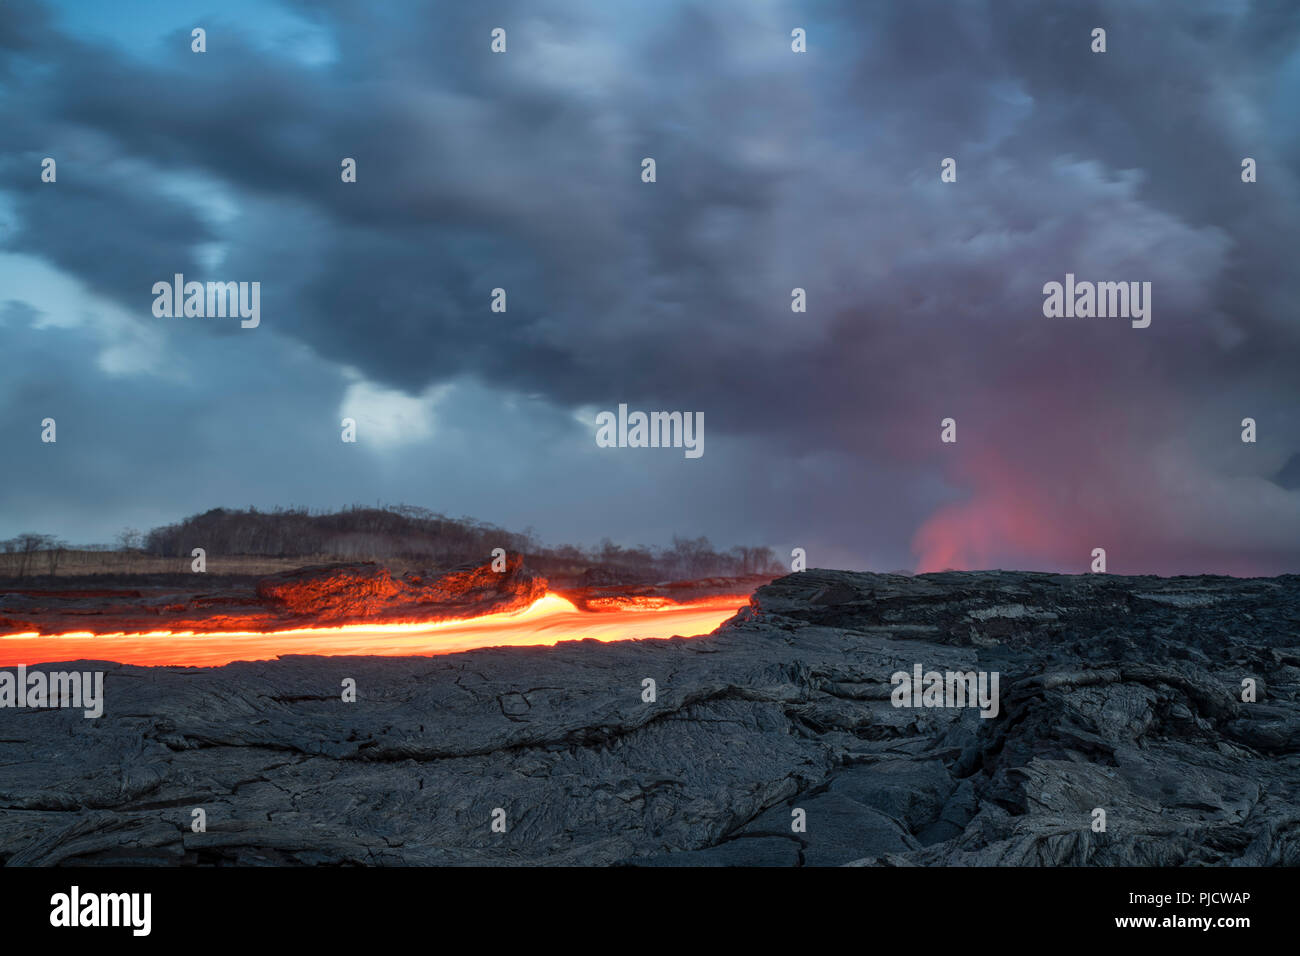 Glowing river of hot lava runs through Kapoho, Hawaii from the Kilauea Volcano east rift zone toward the ocean. Shimmering heat waves distort the view - Stock Image